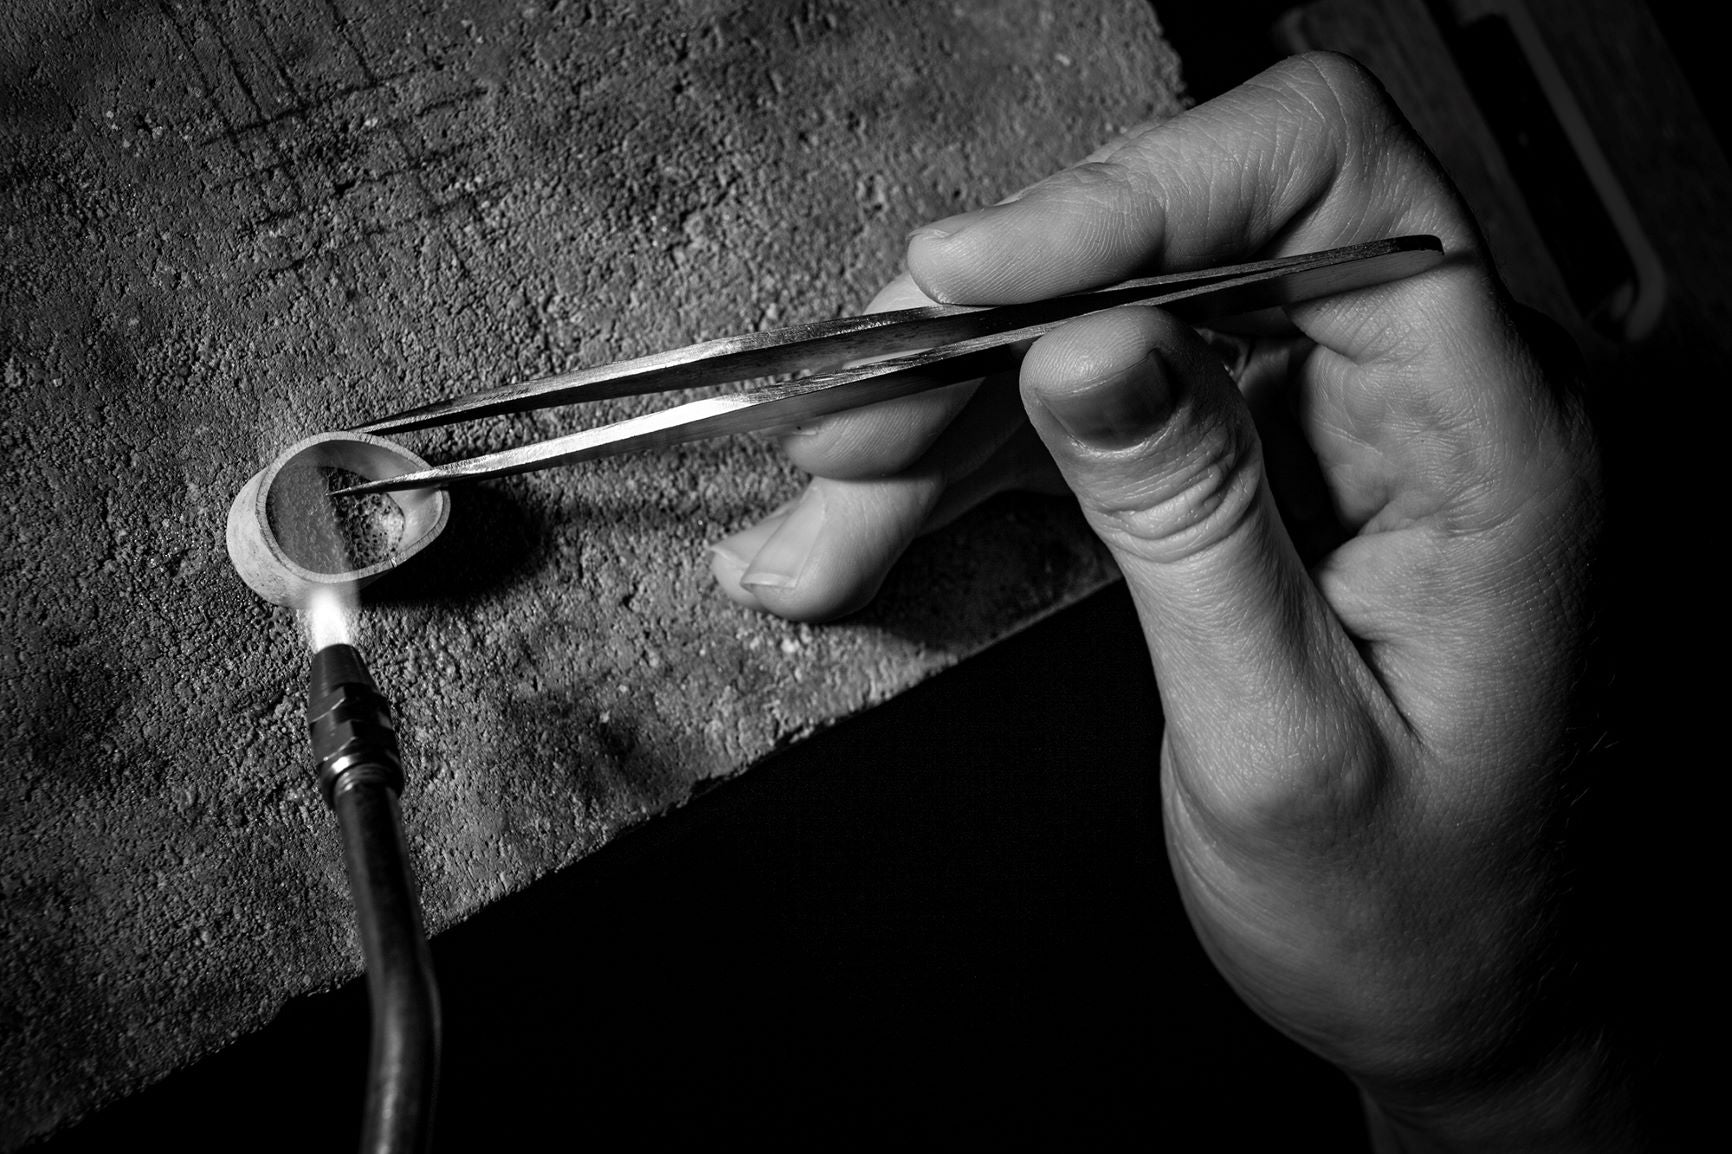 Jeweler at the bench soldering a ring